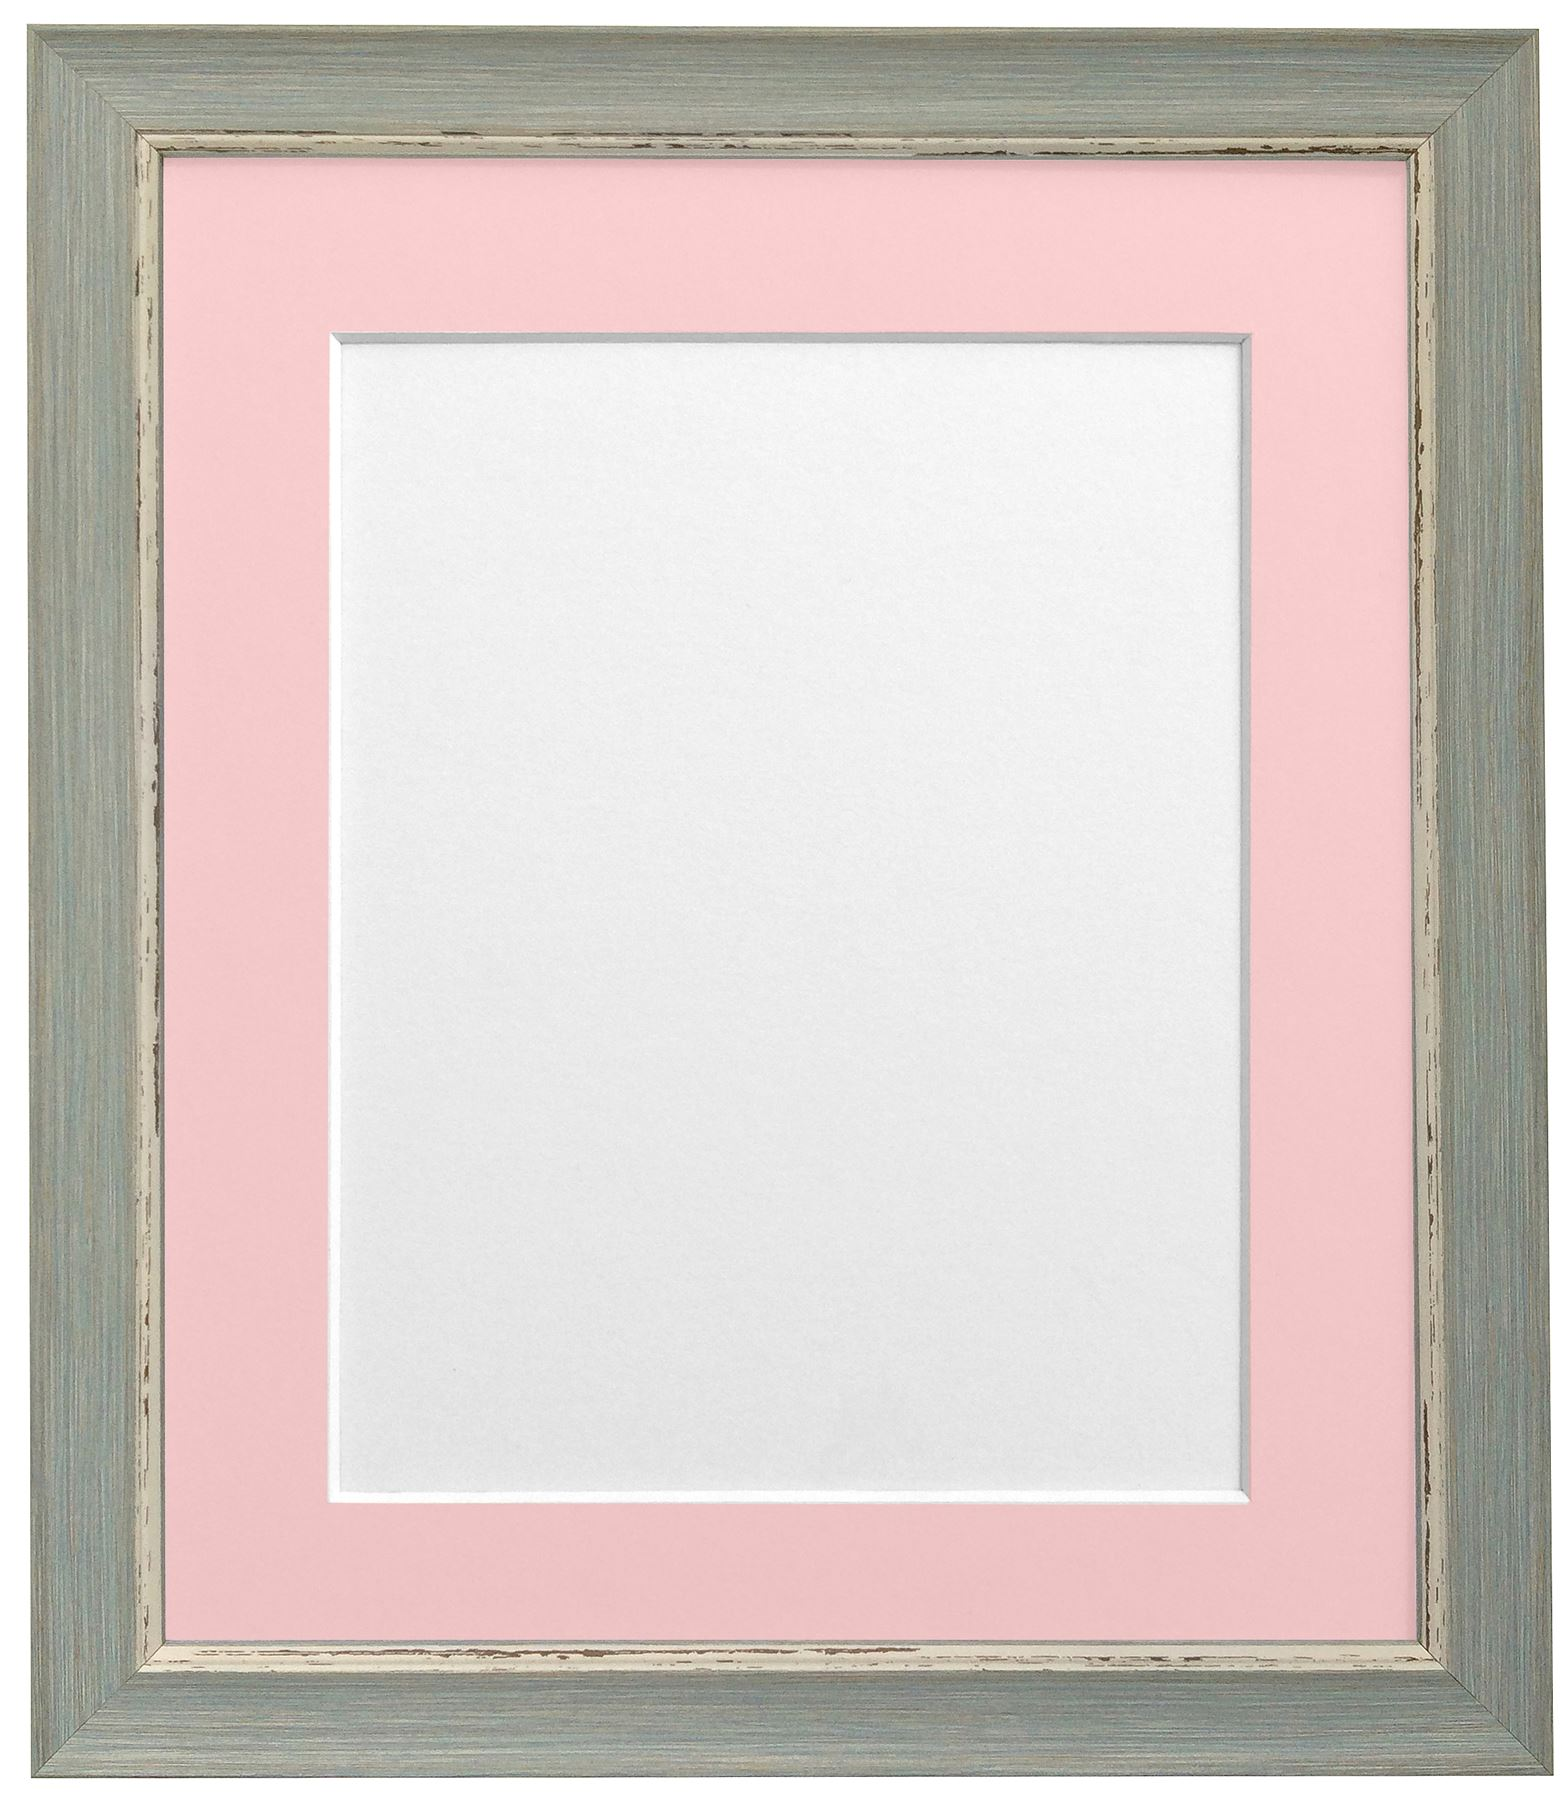 Nordic Distressed Blue Picture Photo Frames With Selection of Acid ...